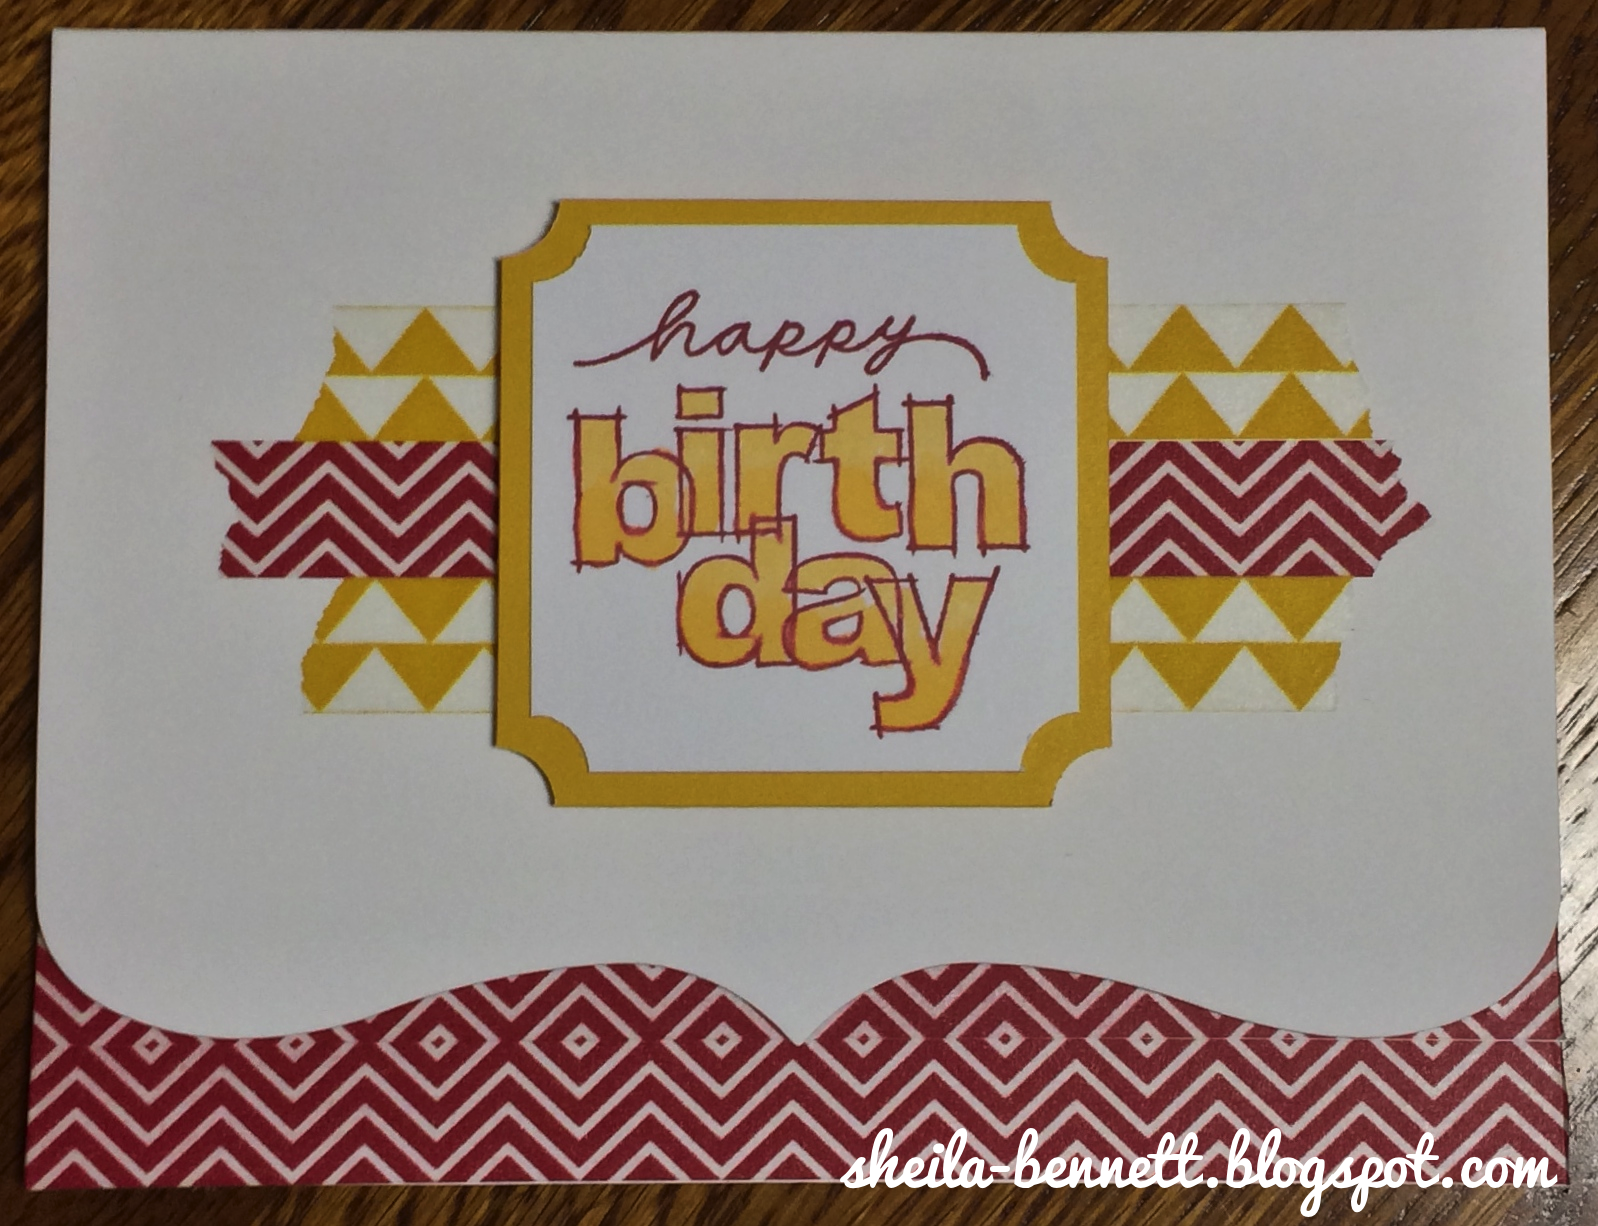 Sheila's Stamping Stuff: Washi Tape ~ Stampers With An Attitude (Blog Hop).   Heartfelt Birthday Wish stamp with Washi Tape